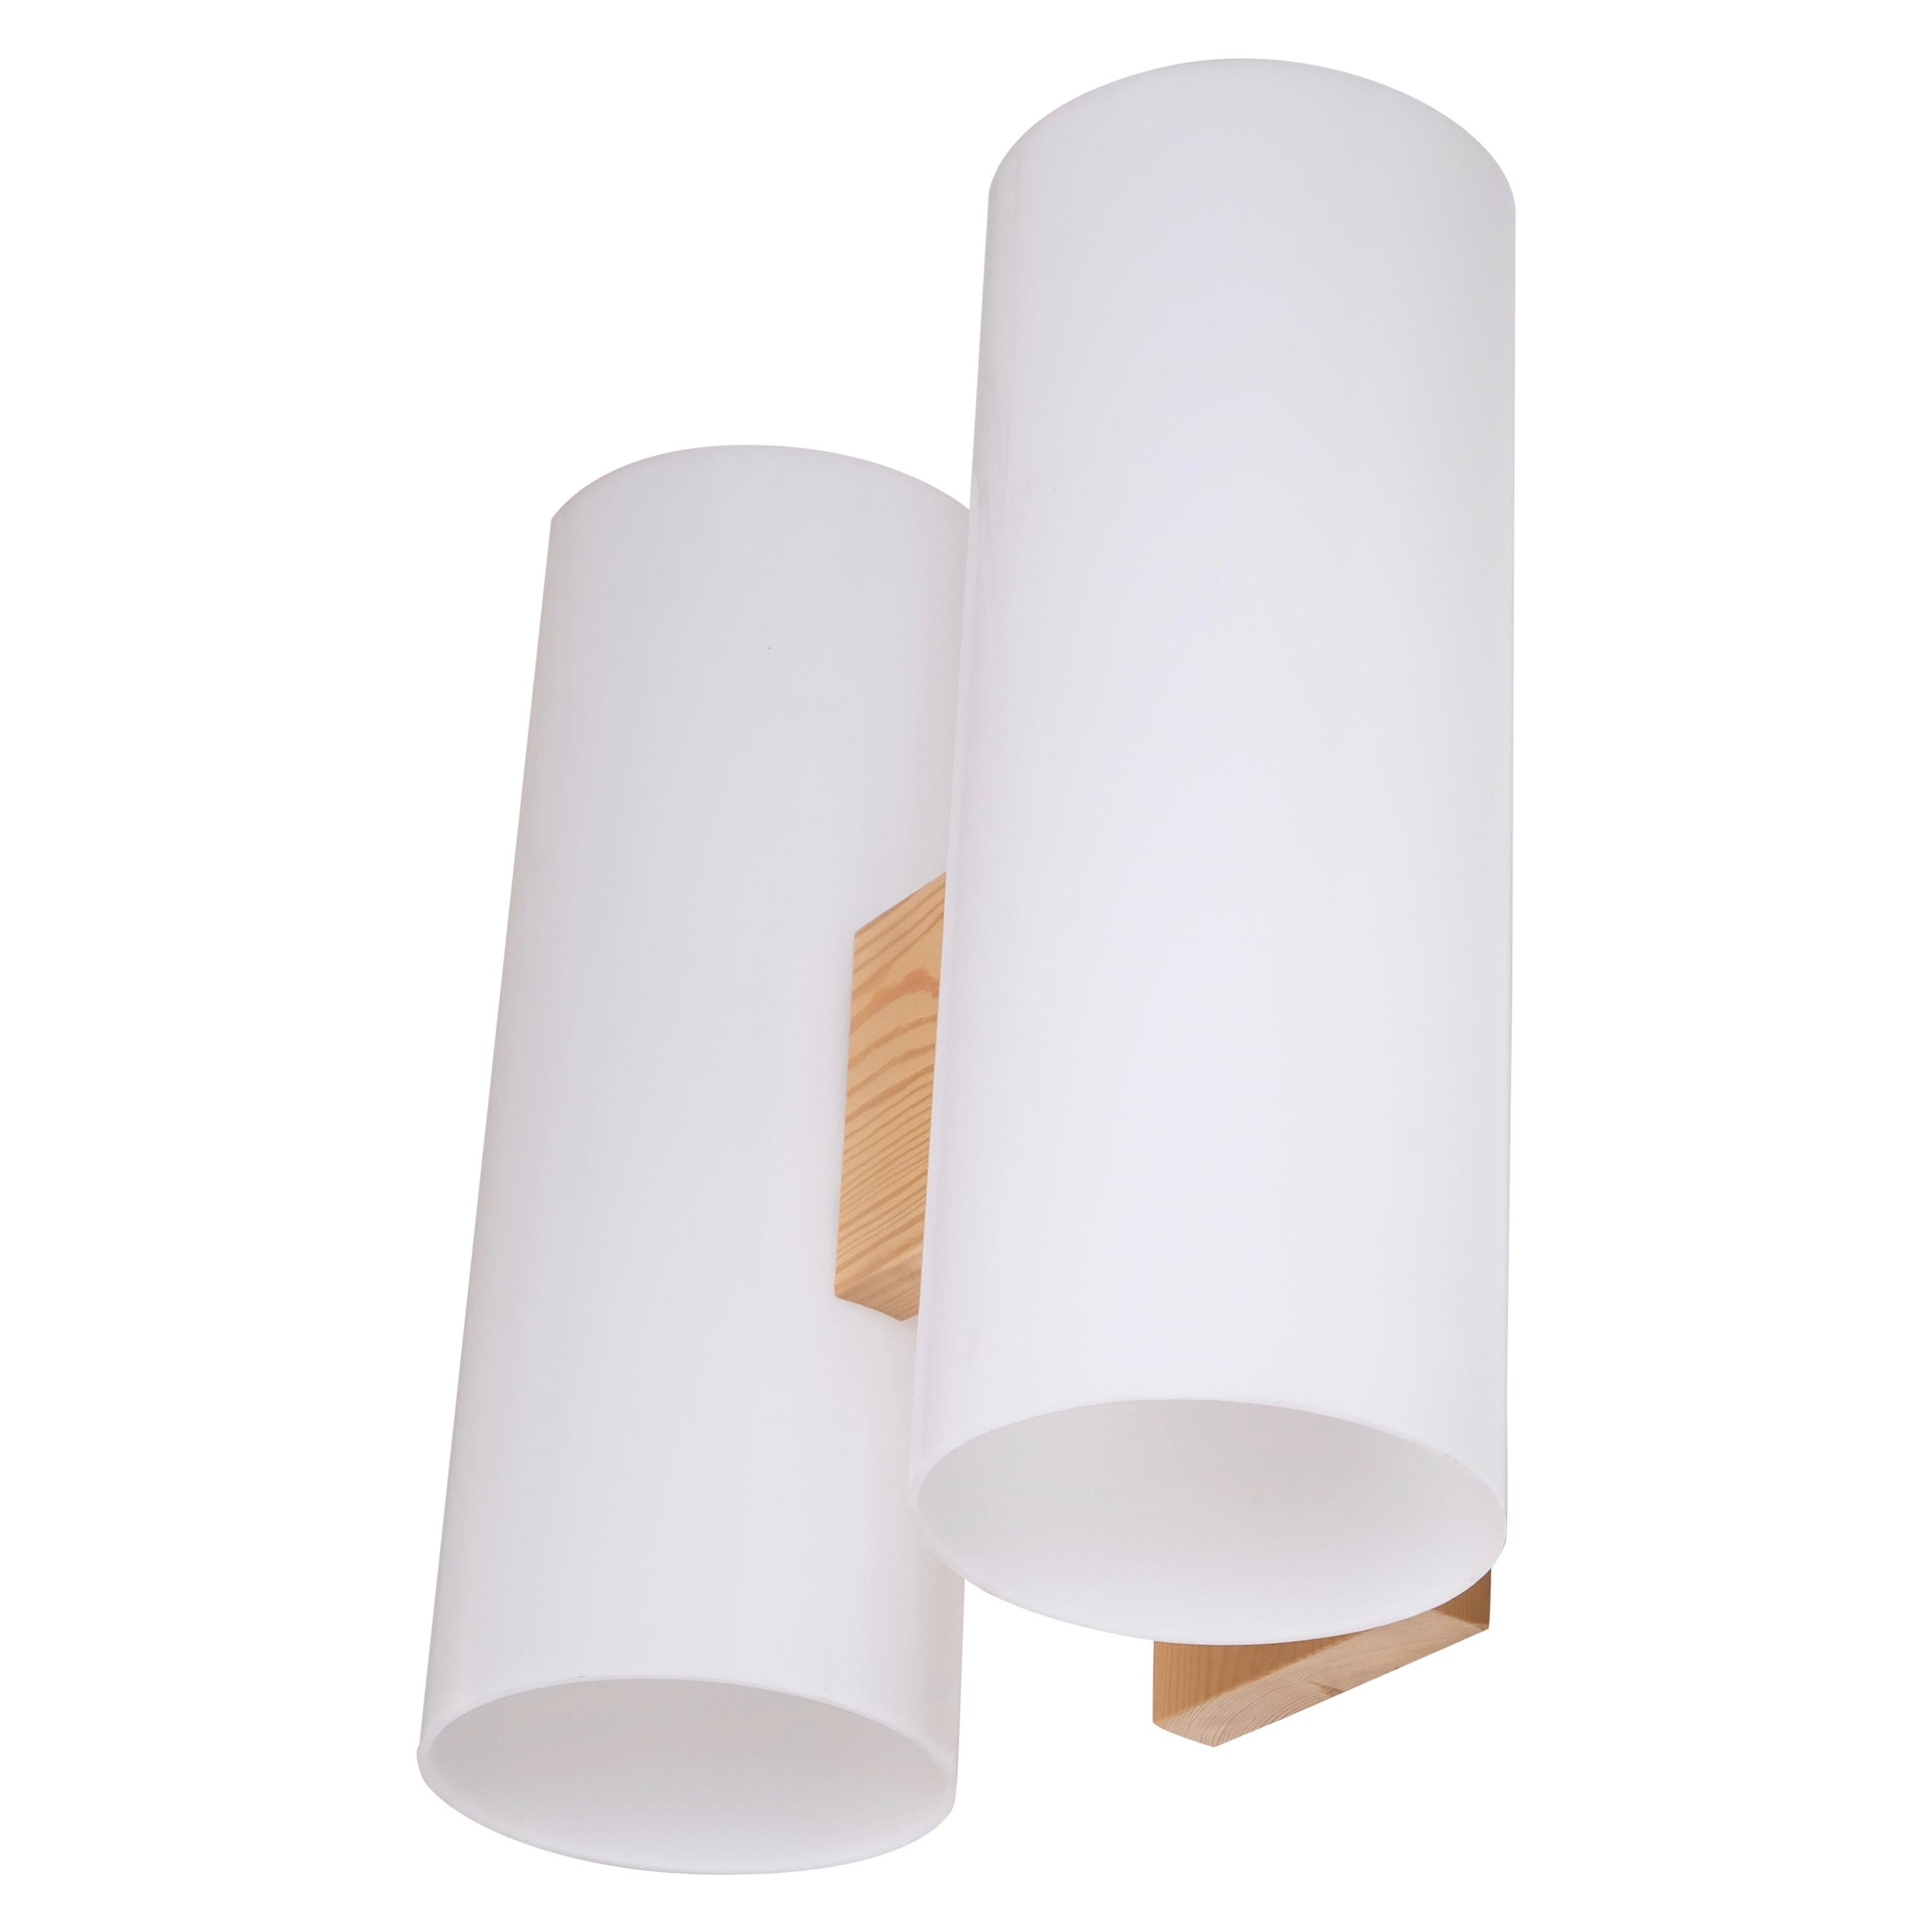 Set of 6 Wall Lamps by Uno & Östen Kristiansson for Luxus, 1960s